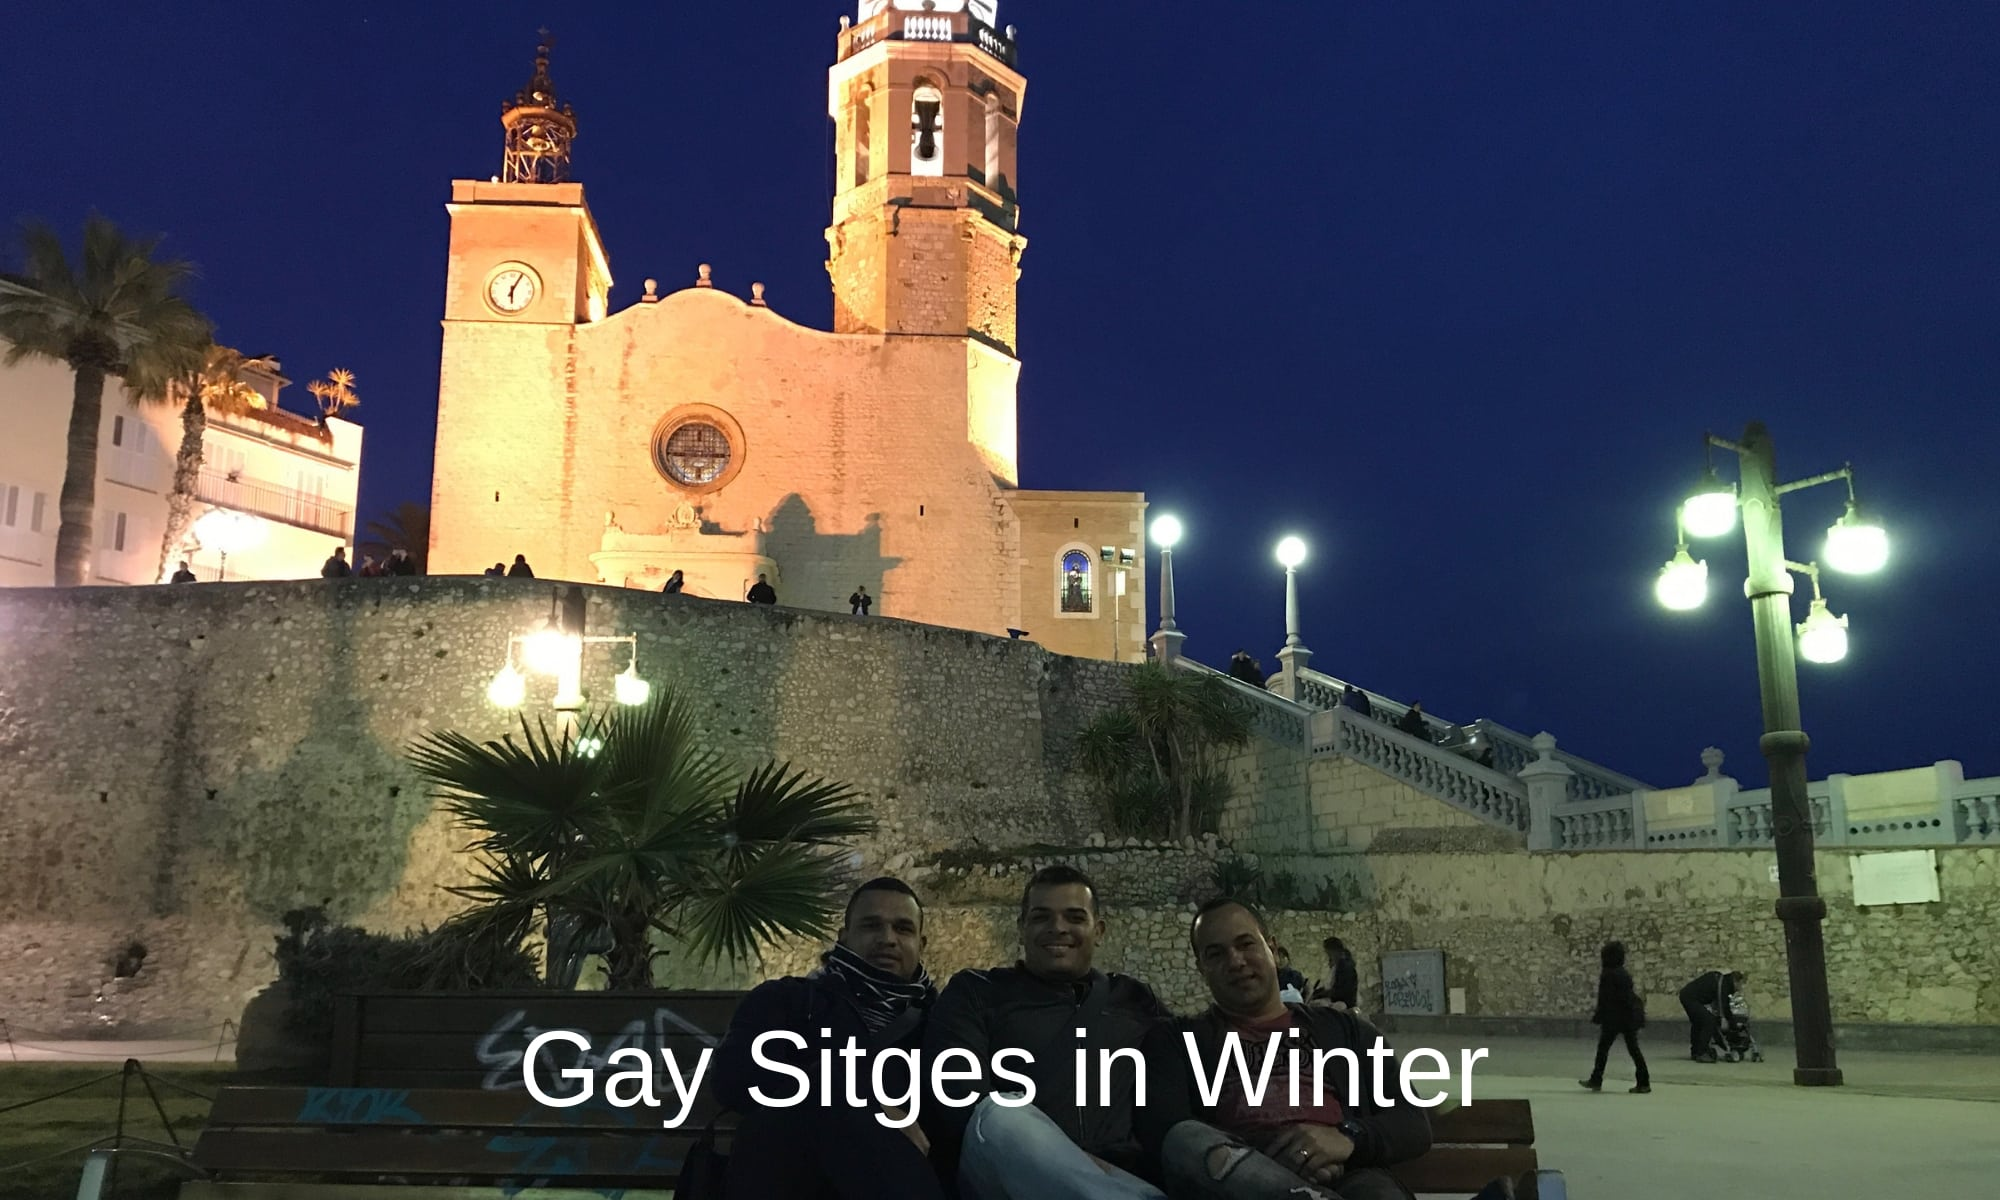 Gay Sitges in Winter